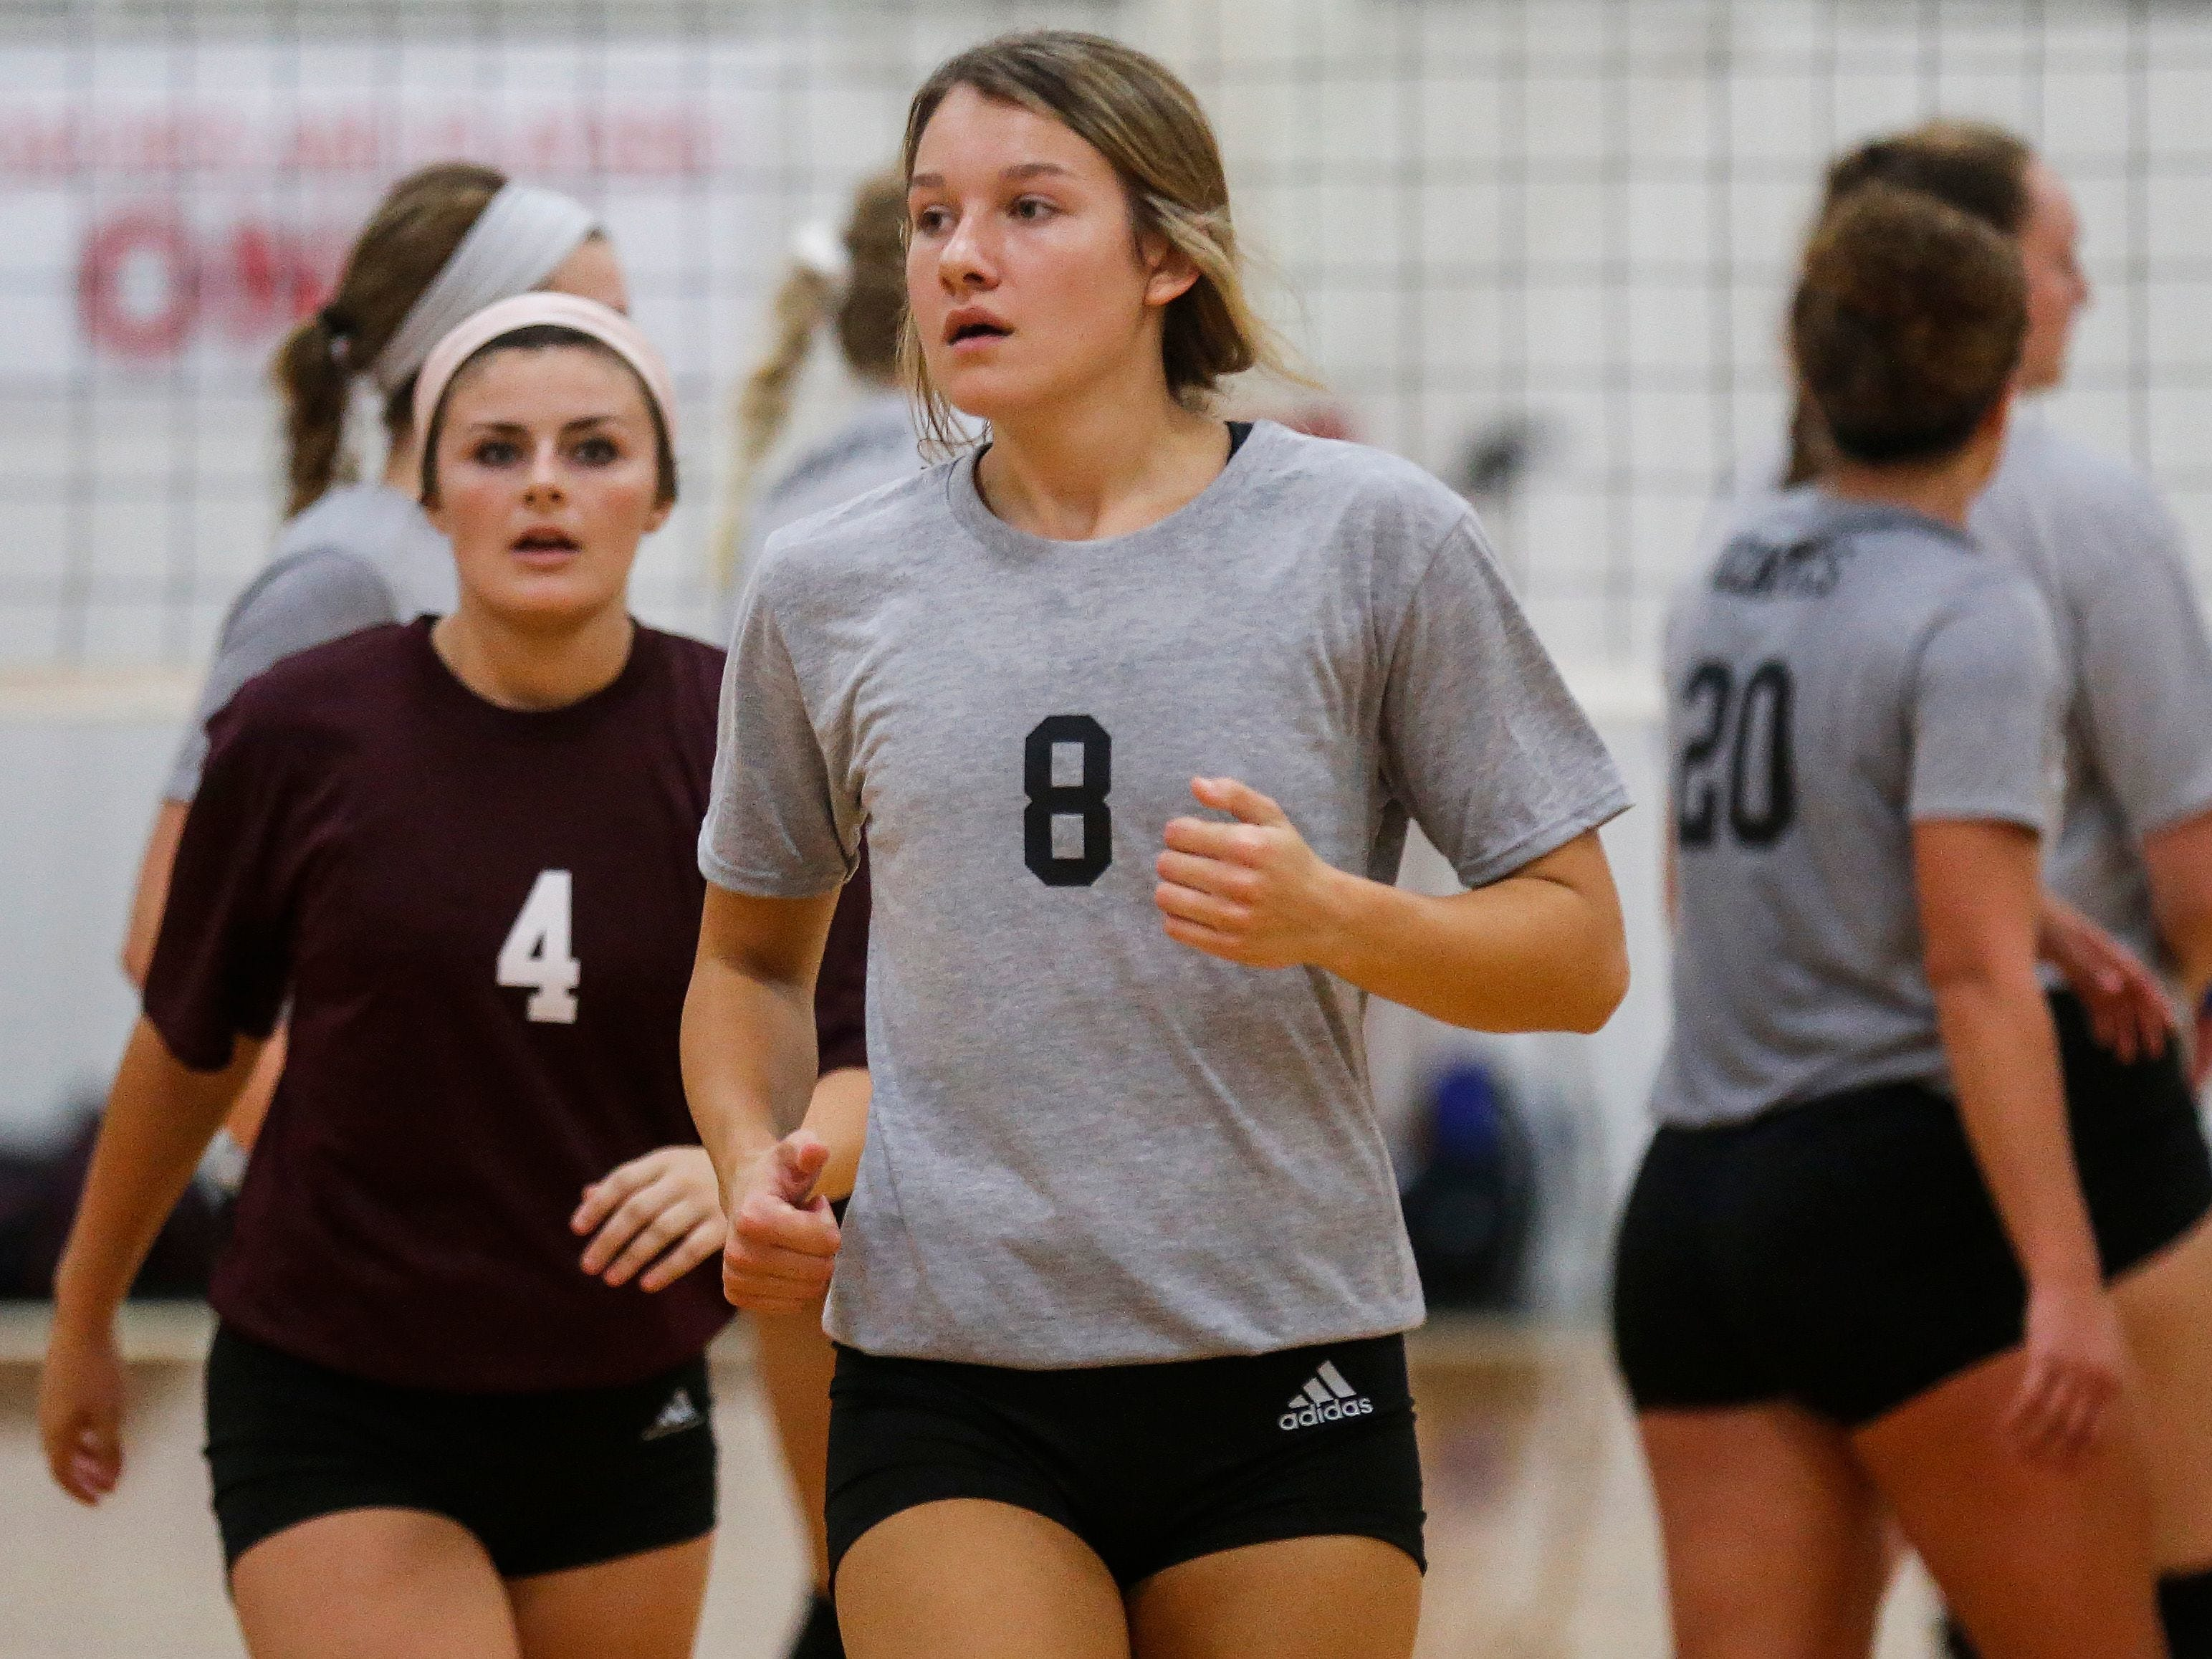 Rielly Dobbs (8), of the College of the Ozarks Bobcats, and her teammates wore grey t-shirts and Adidas shorts during their game against the Williams Baptist Eagles during the 2018 Evangel Classic at The Courts in Springfield, MO., on Saturday, Sep. 8, 2018.